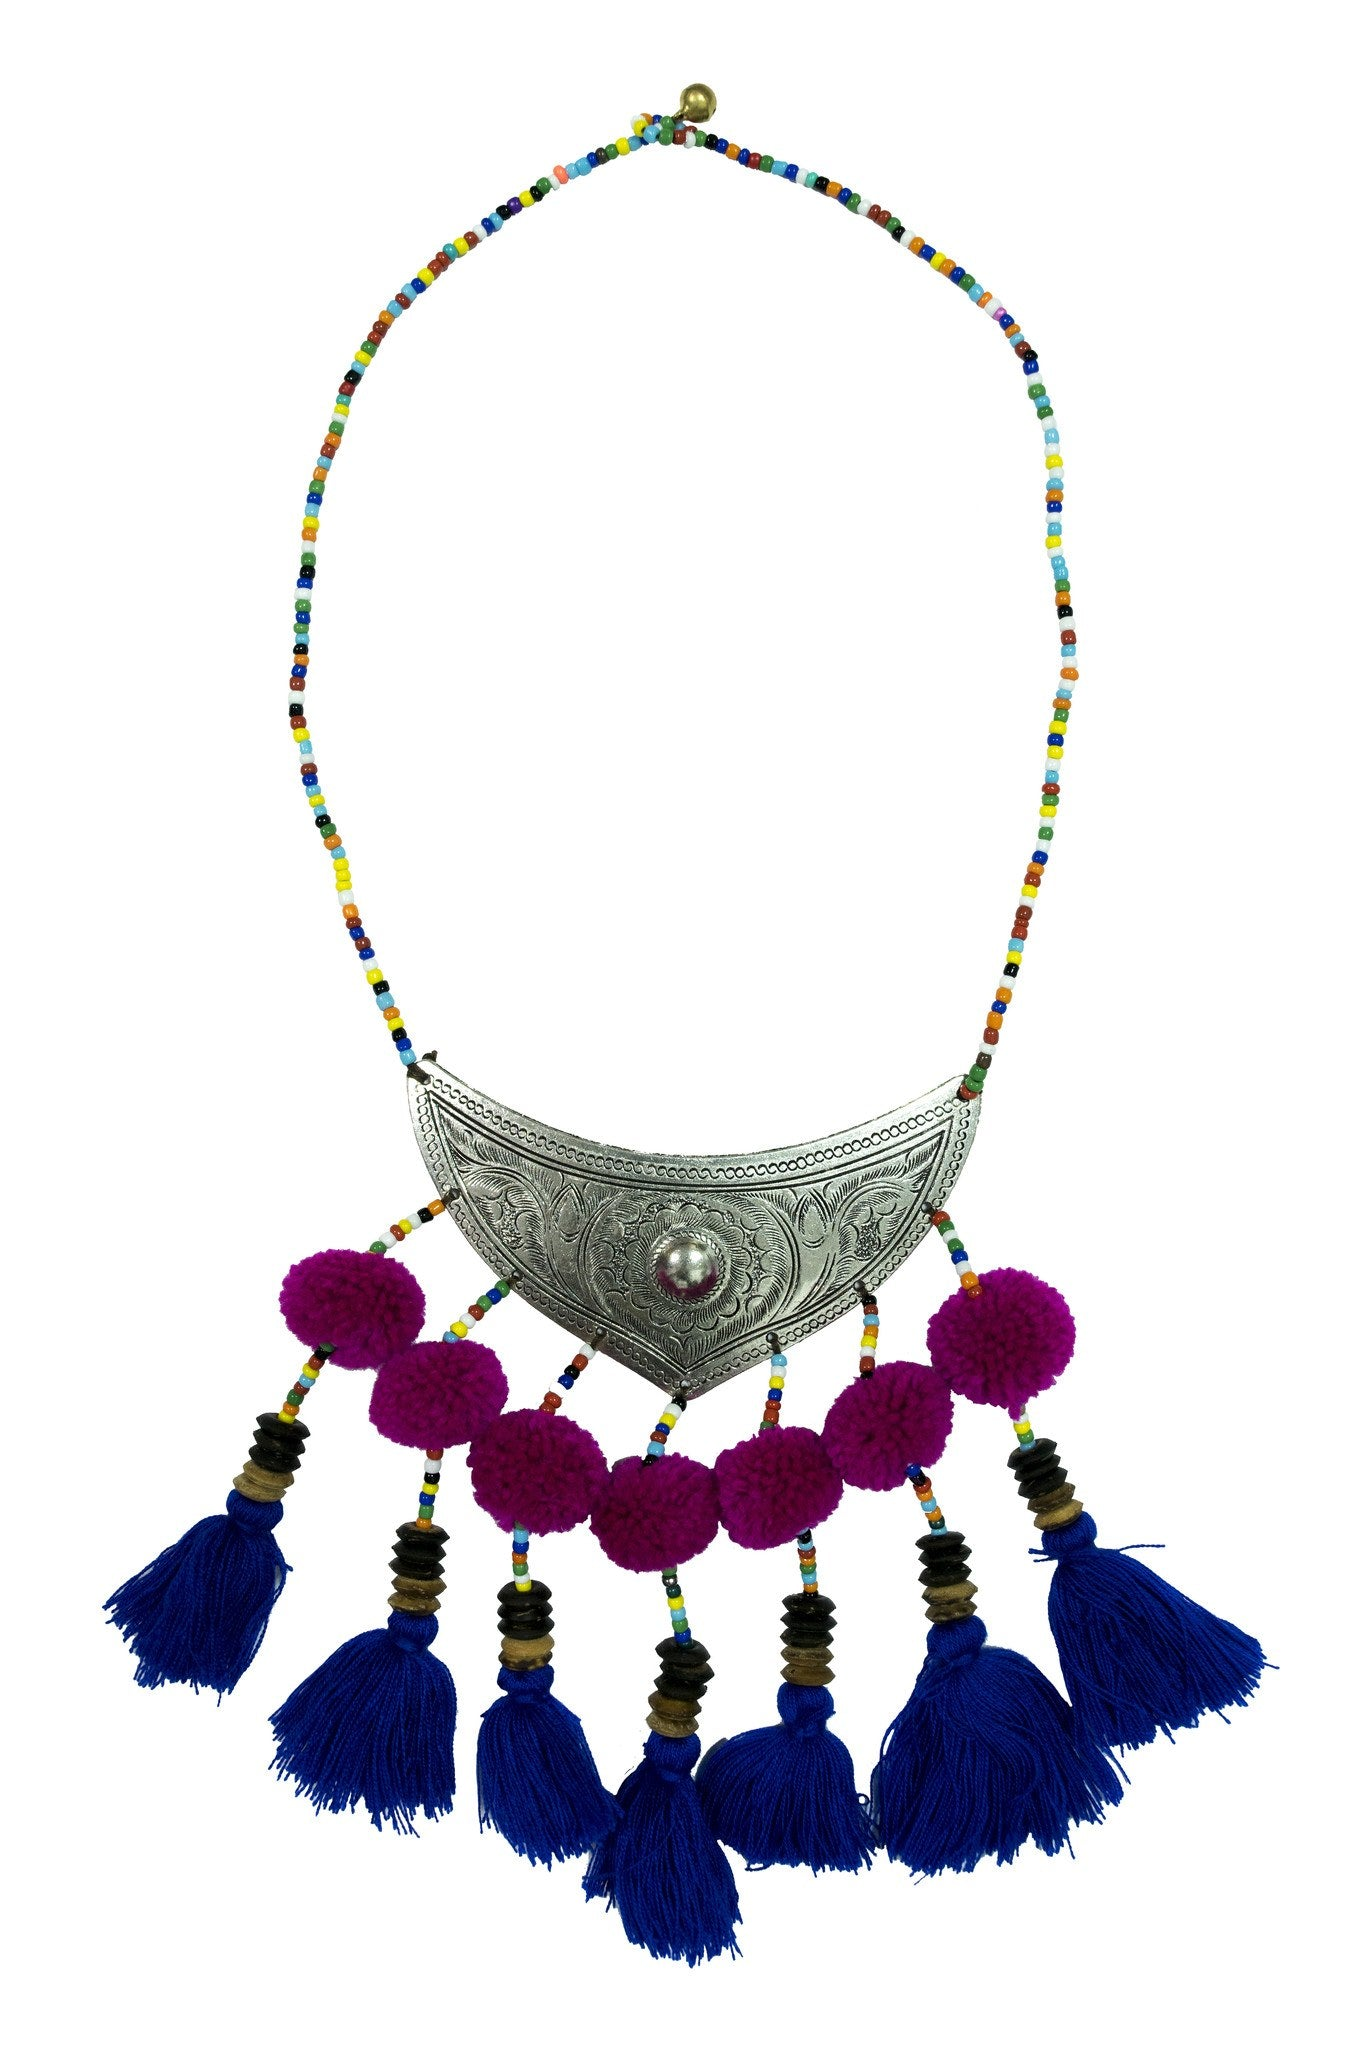 Necklace Stylish Tribal Bohemian Jewellery Unique Accessories - CCCollections